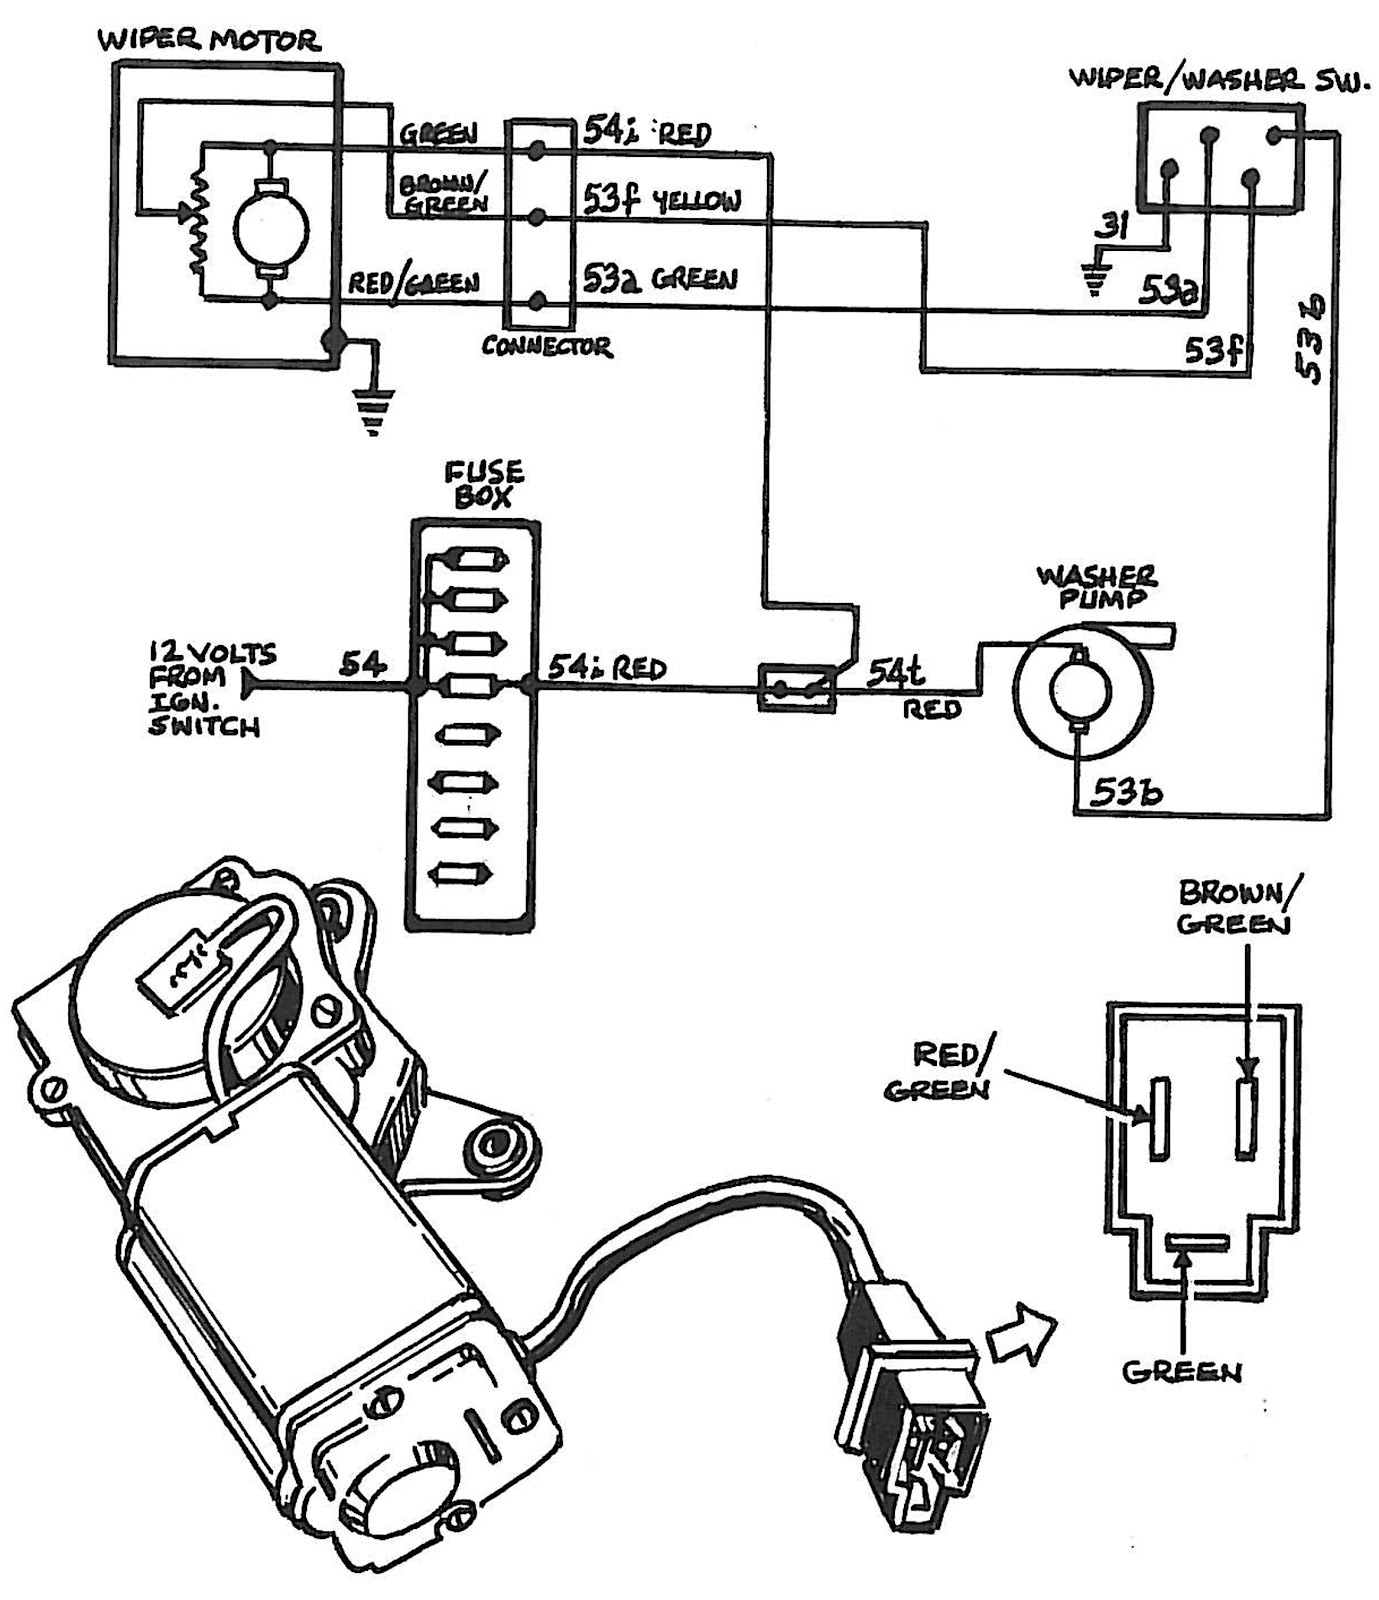 Wiring Diagram For Wiper Motor : Chevrolet wiper wiring diagram get free image about